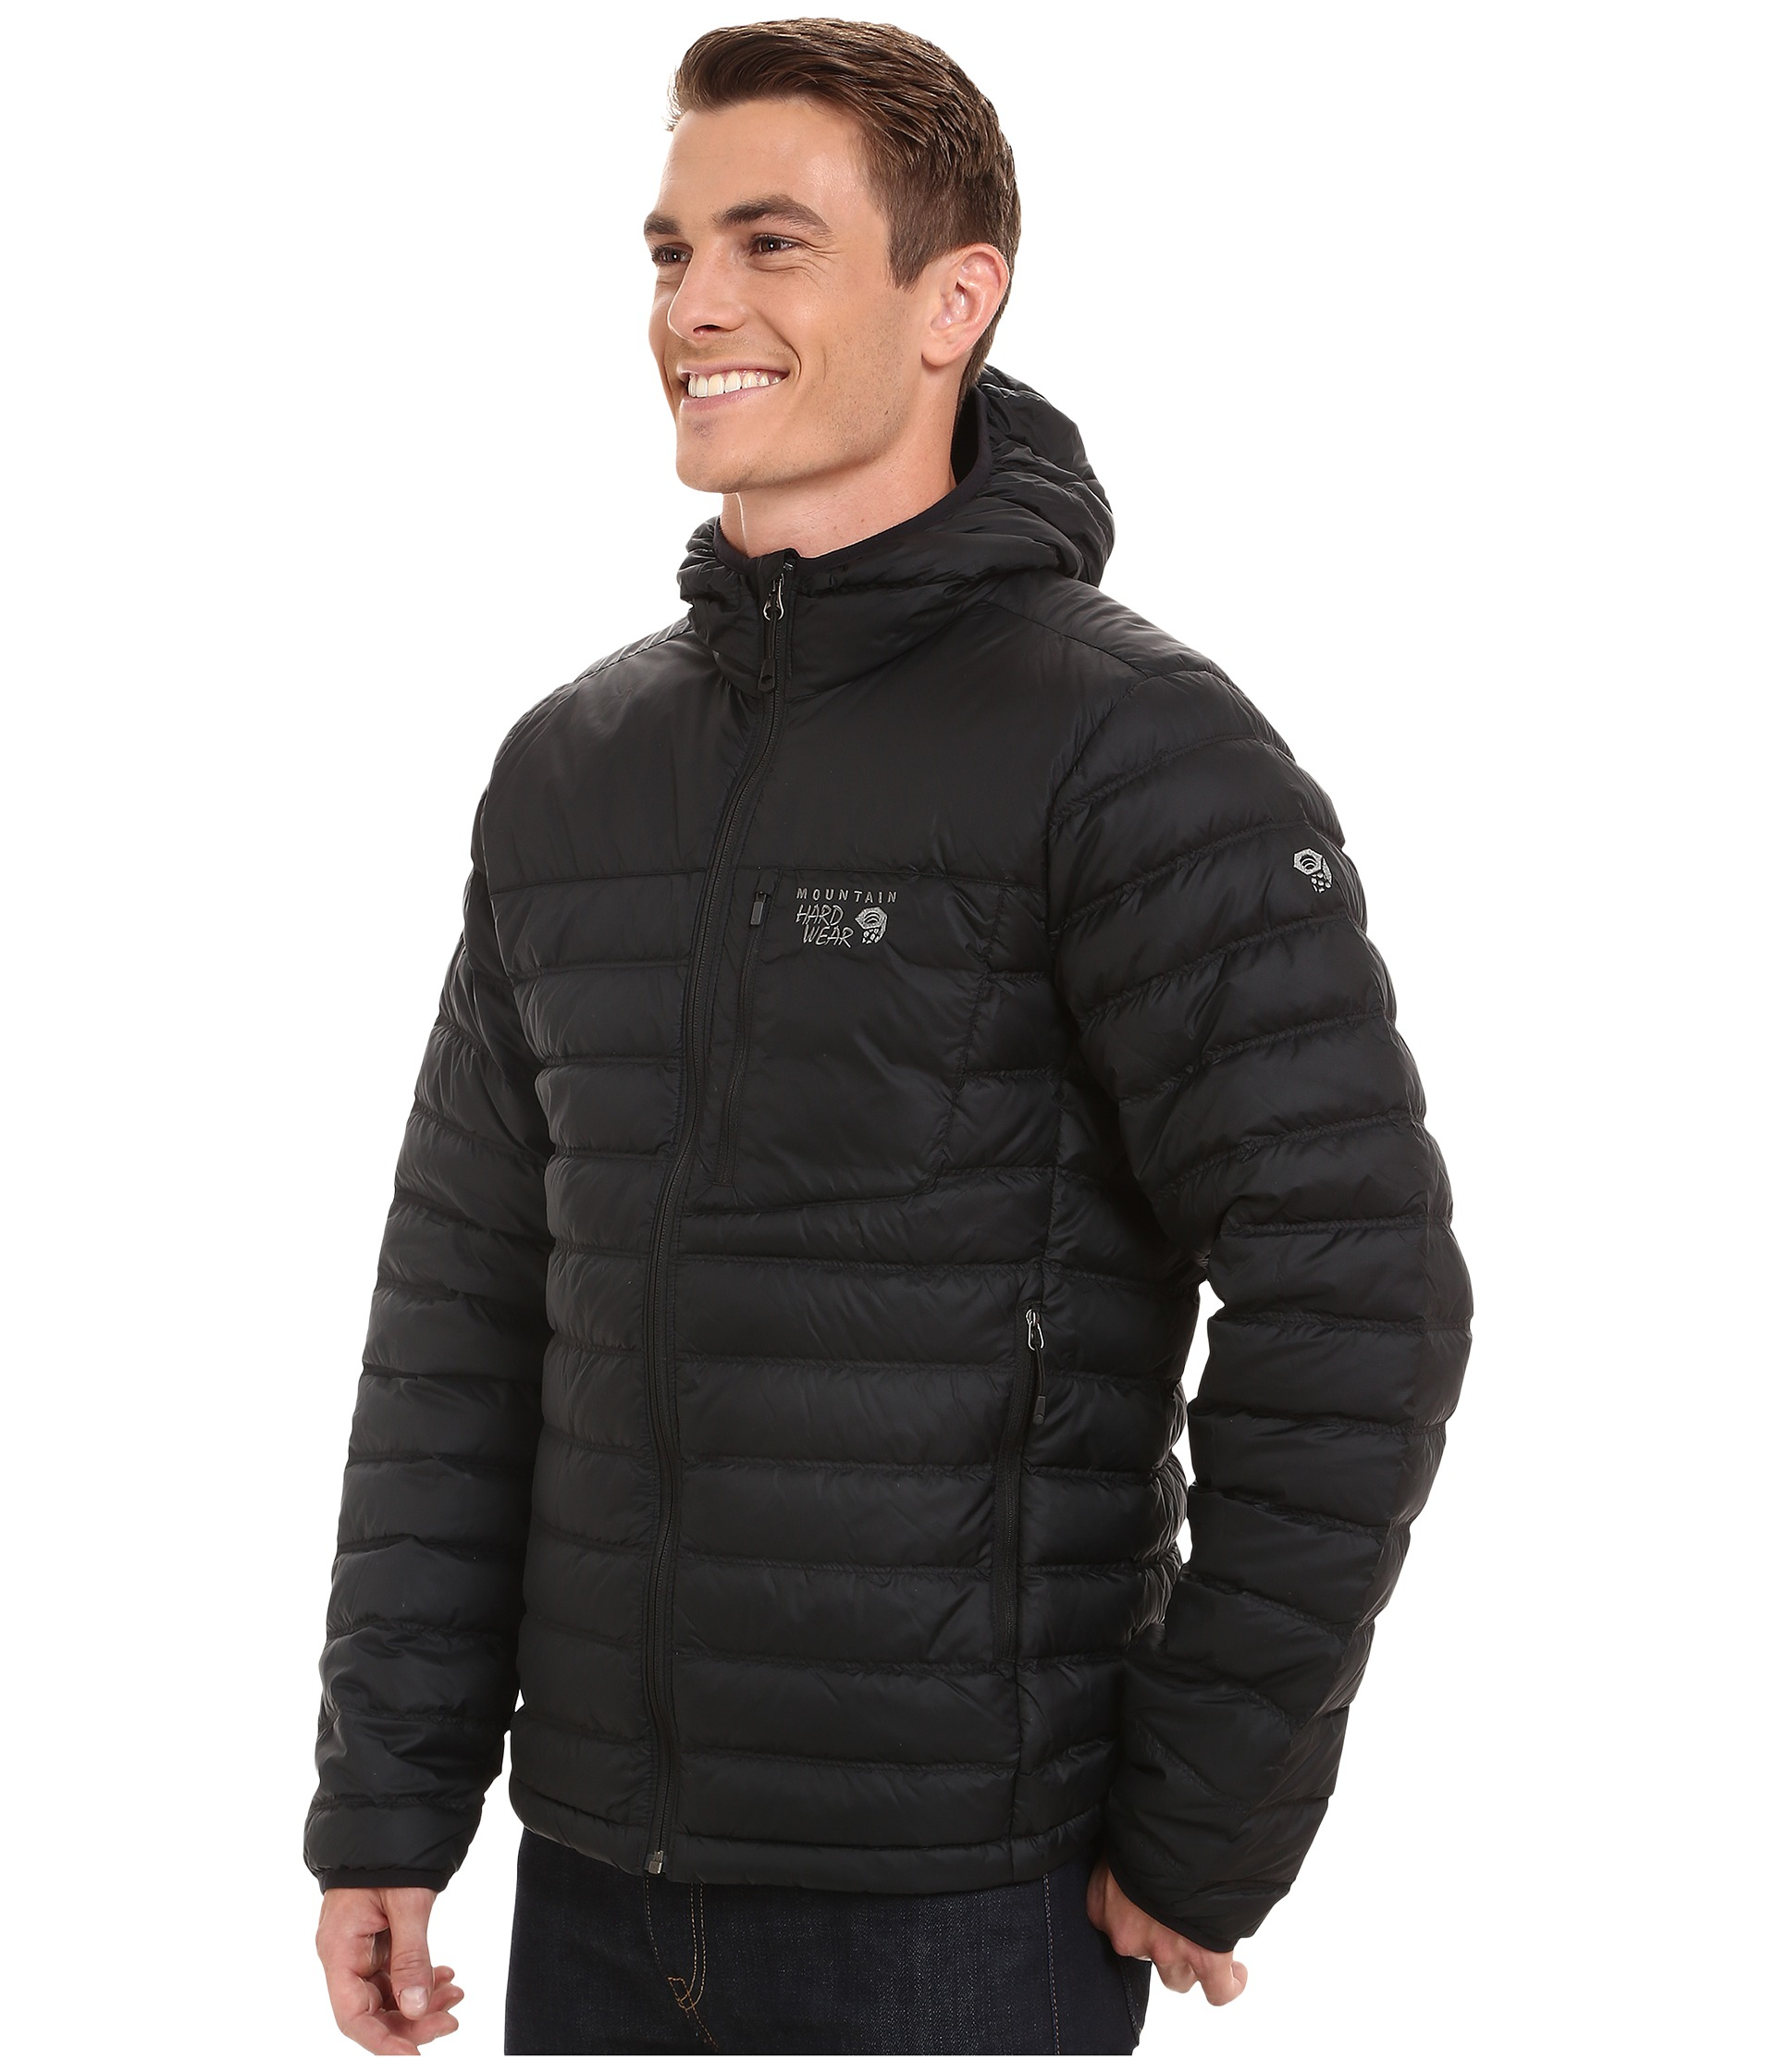 Mountain hardwear Dynotherm™ Hooded Down Jacket in Black for Men